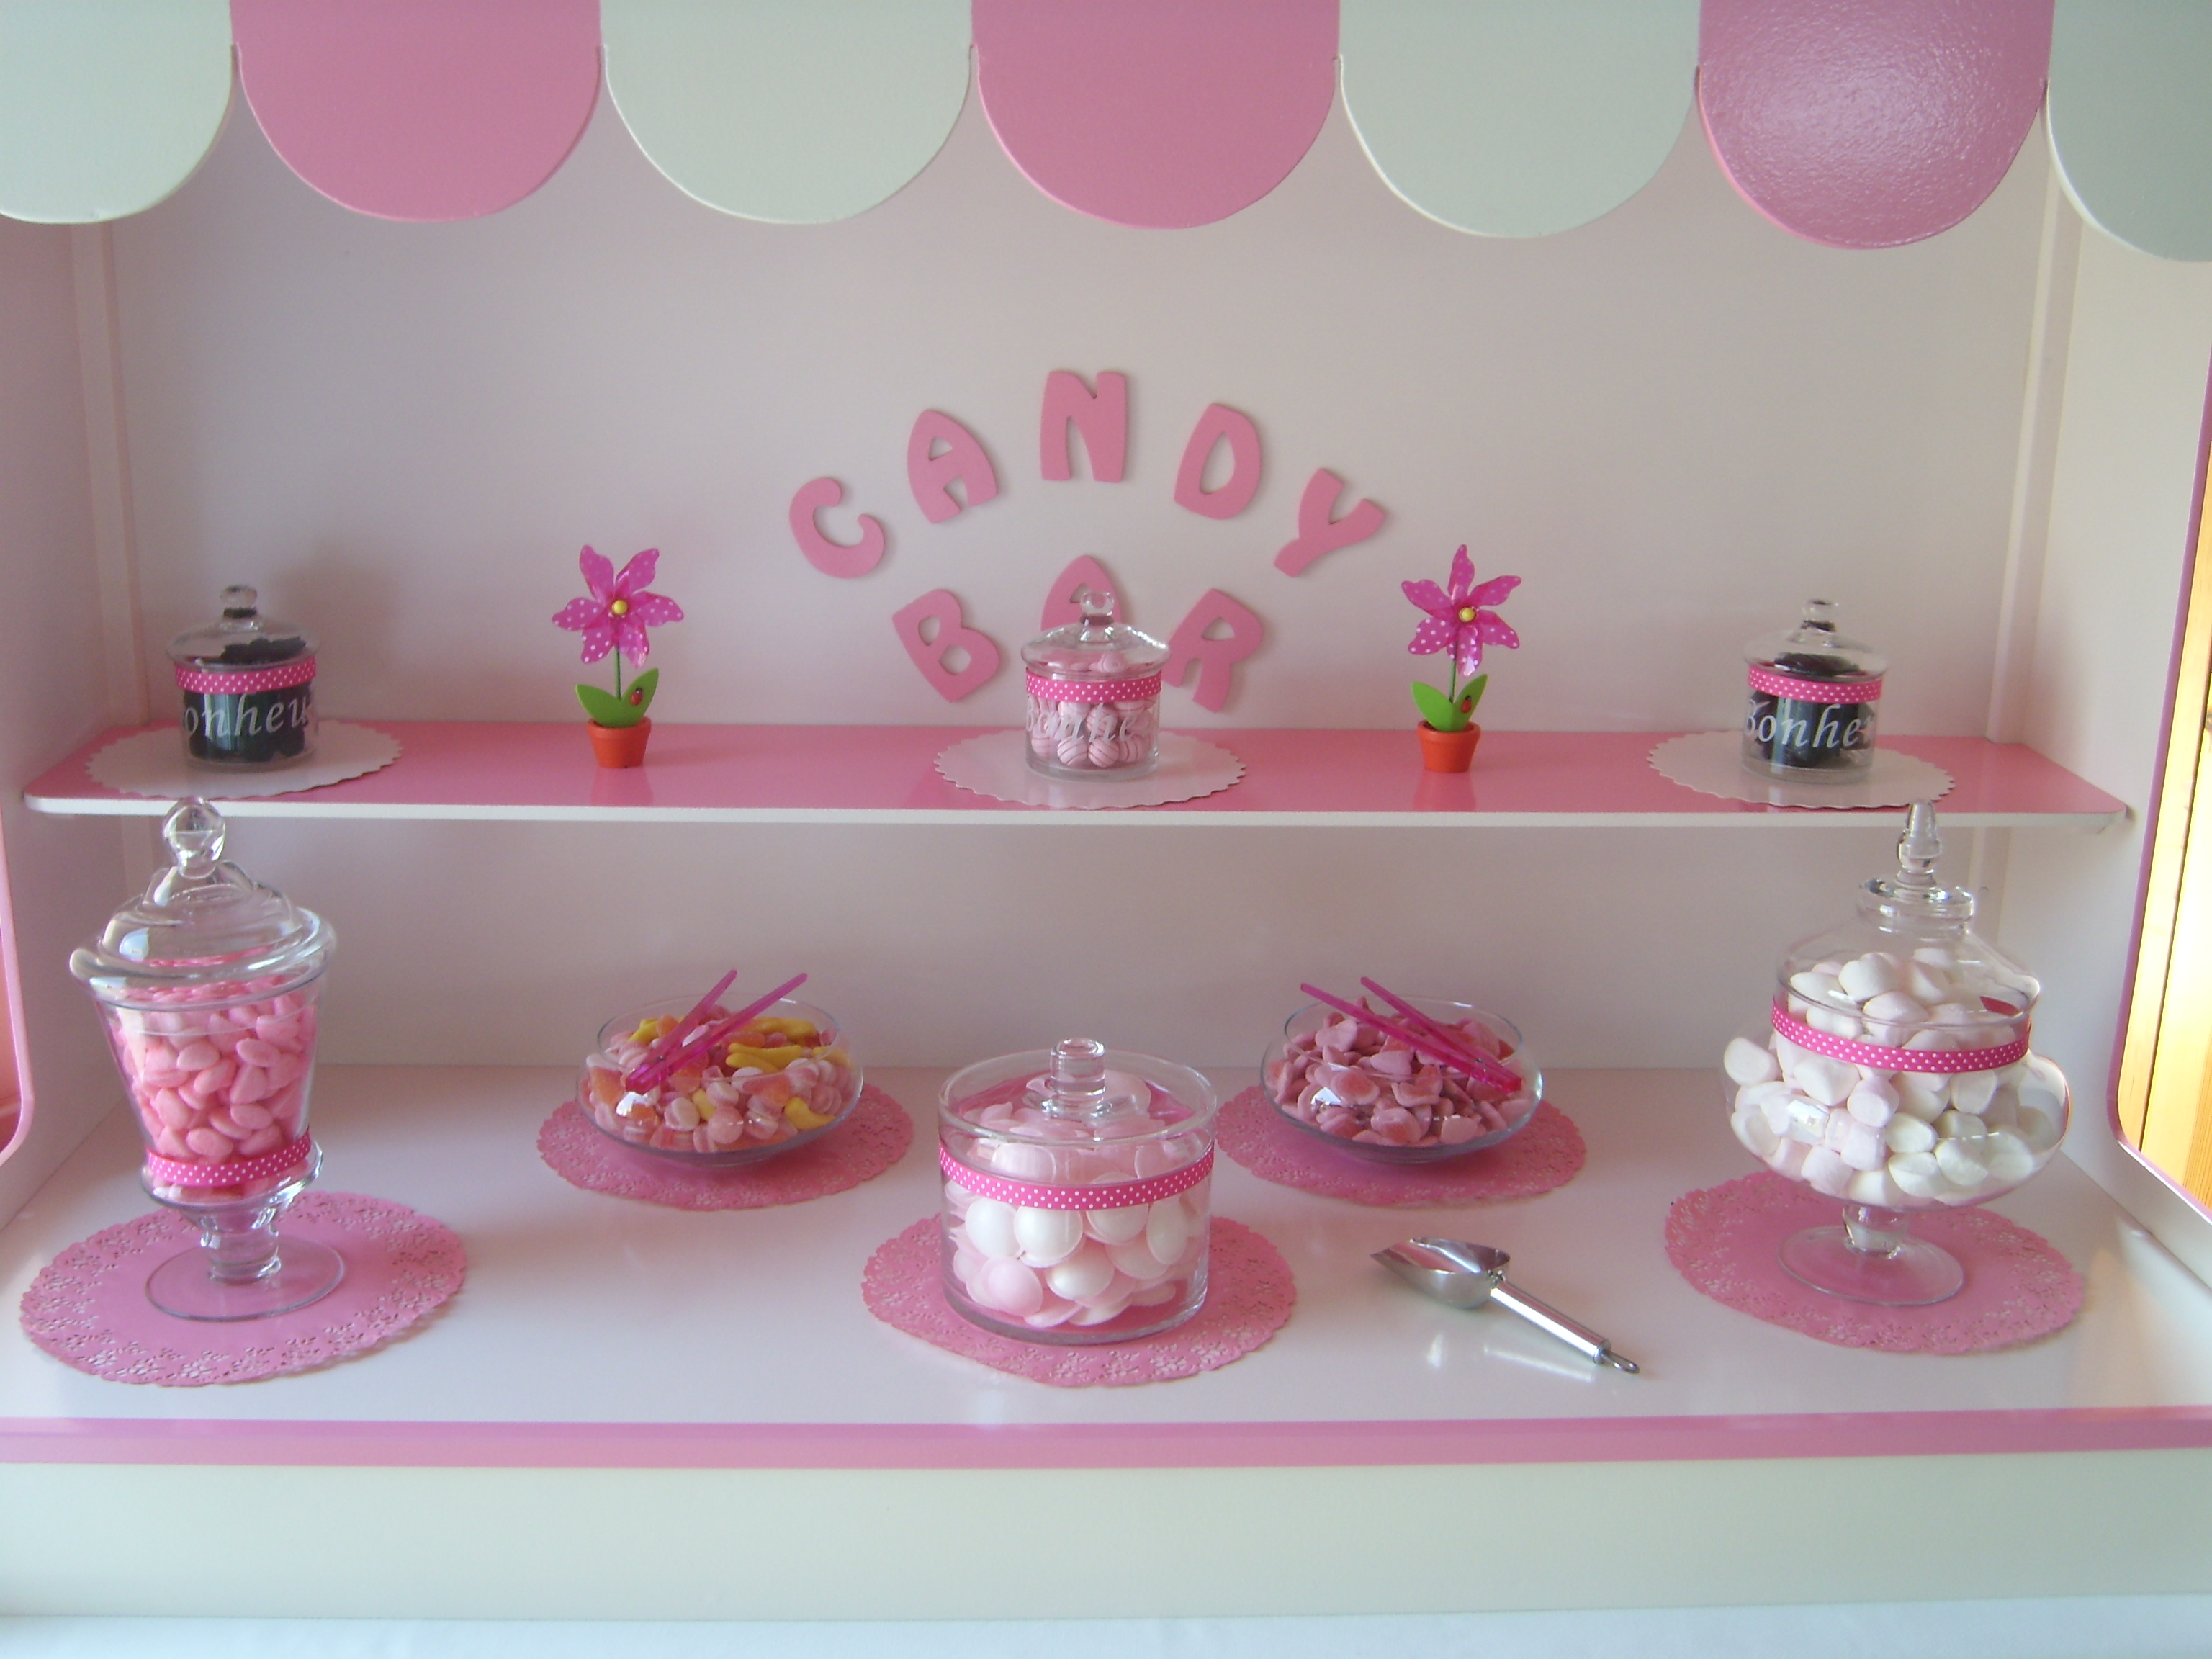 Deco pour candy bar fashion designs - Candy bar pas cher ...